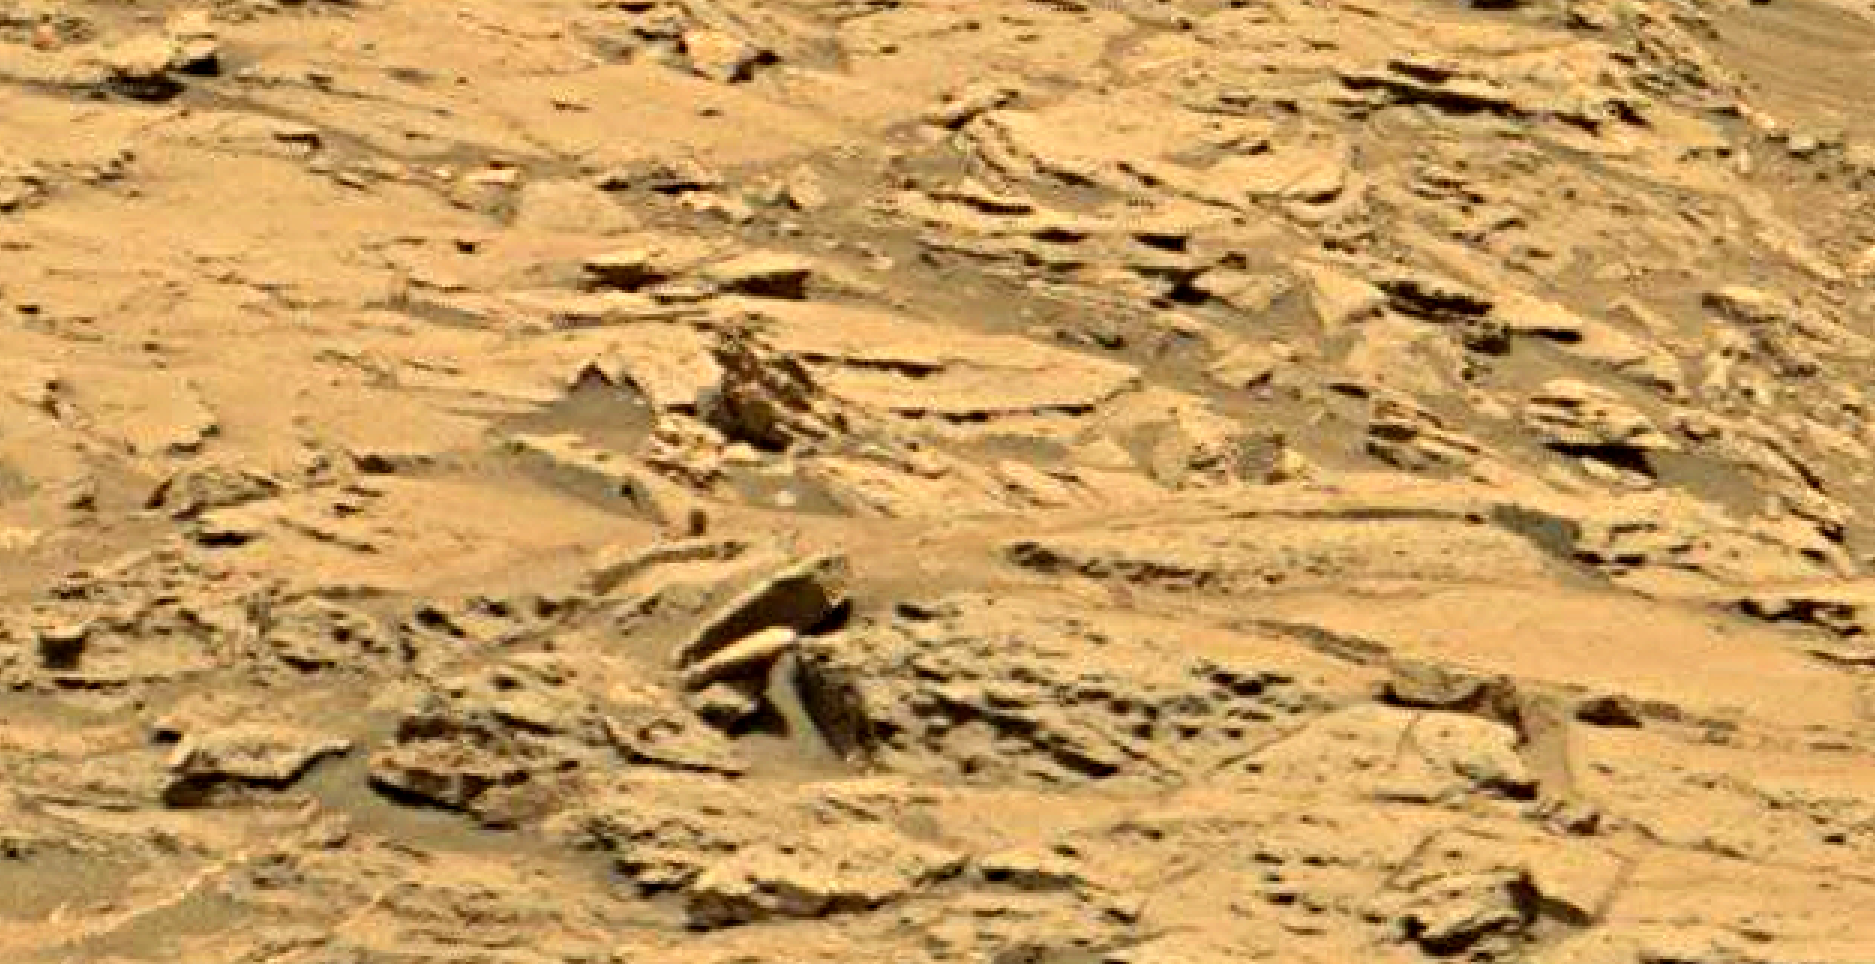 mars sol 1353 anomaly-artifacts 22 was life on mars